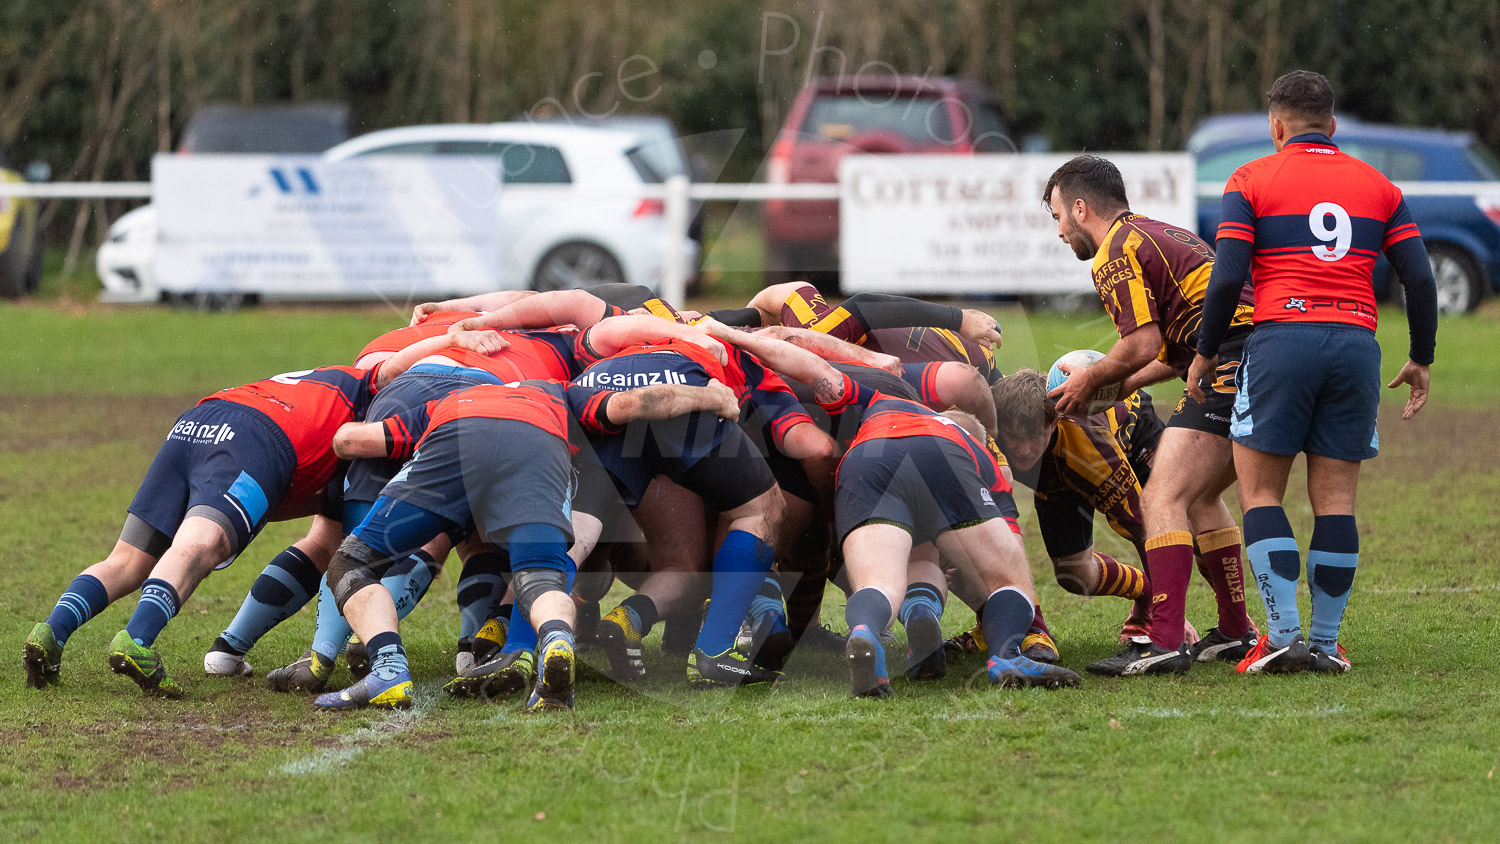 20181027 Amp Extras vs St Neots 2nd XV #2610